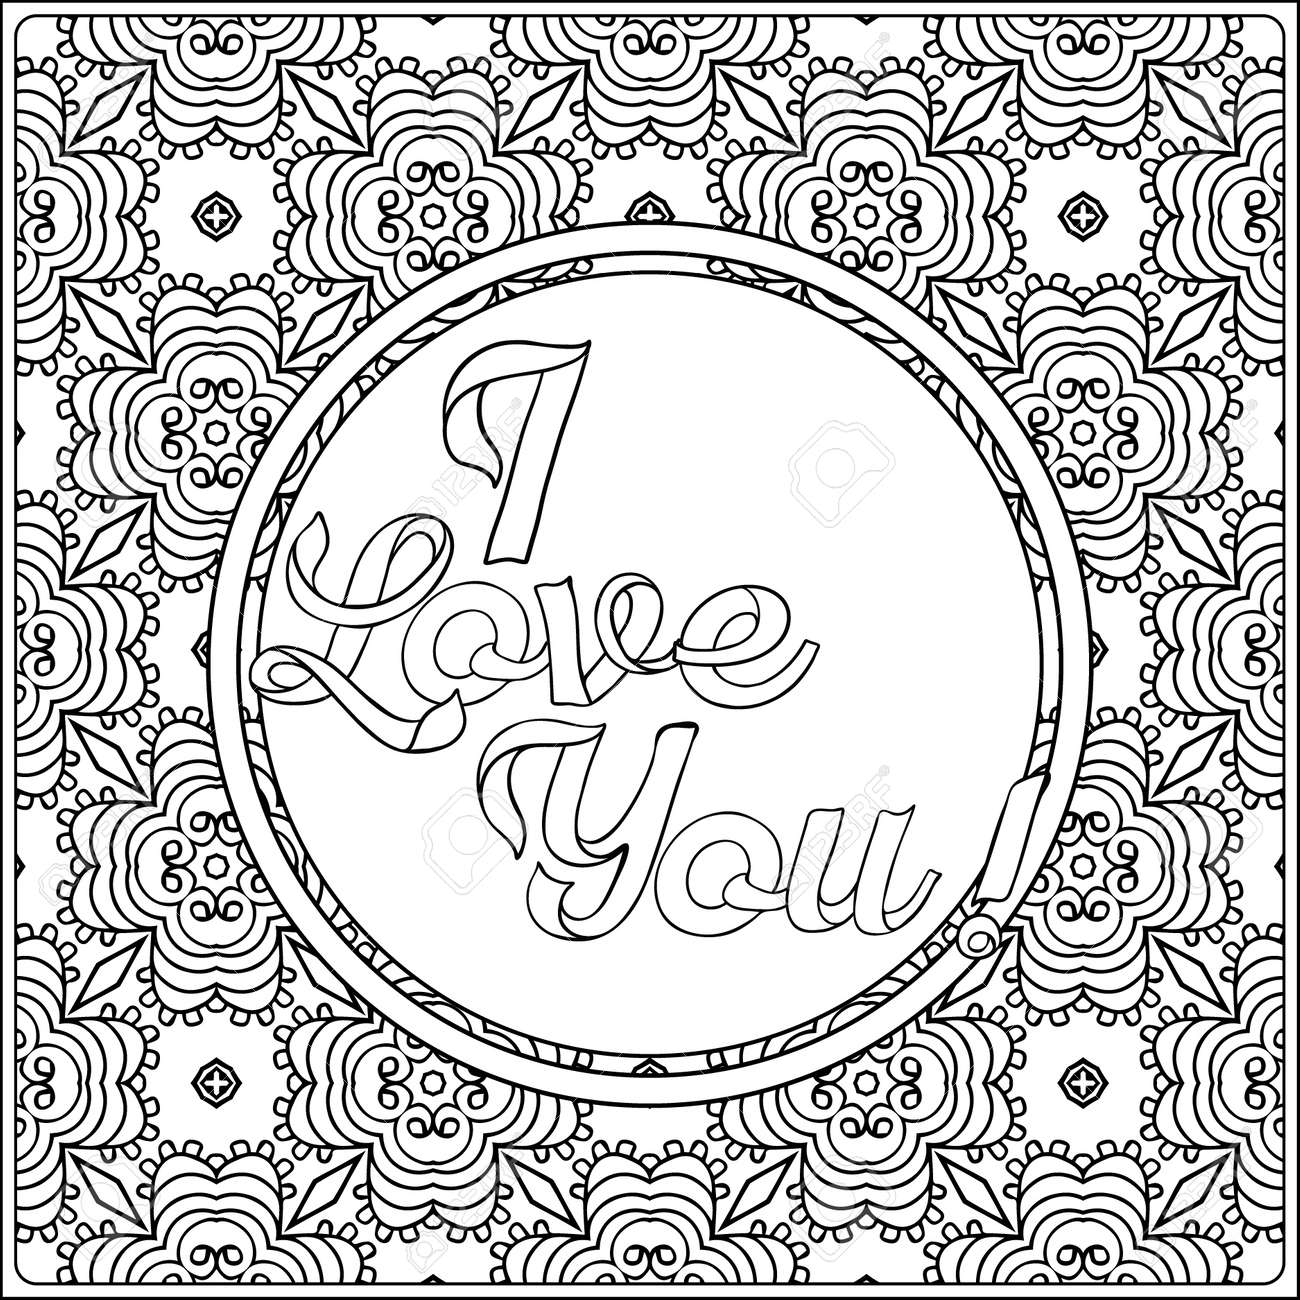 I Love You Lettering Coloring Page With Message On Vintage Pattern Royalty Free Cliparts Vectors And Stock Illustration Image 61441631